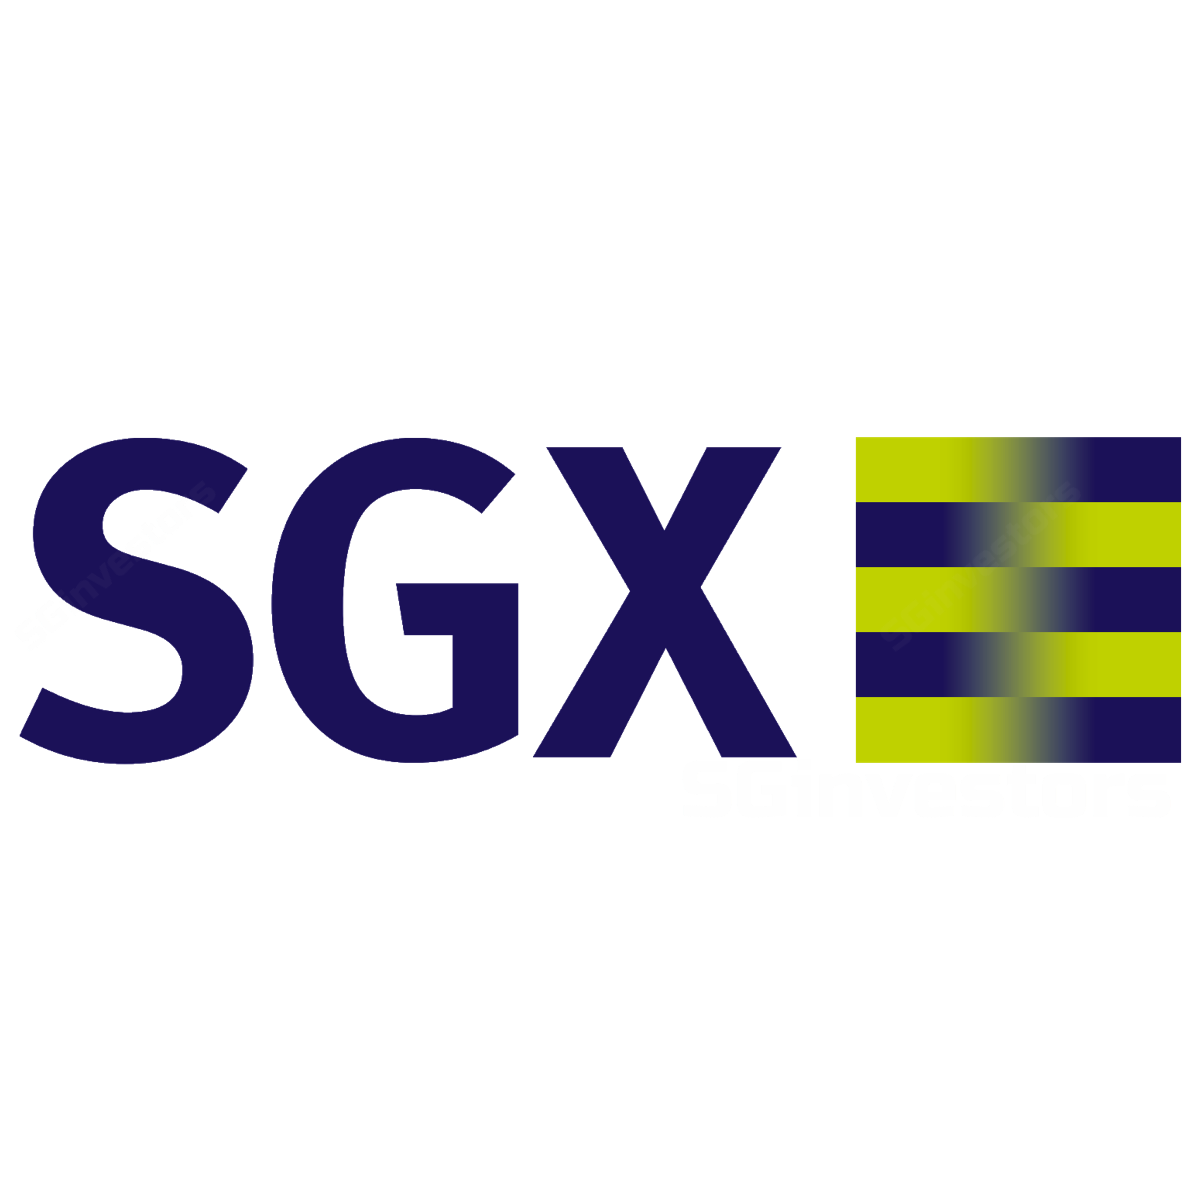 SGX - RHB Invest 2017-07-28: FY17 SADV Increases Marginally YoY